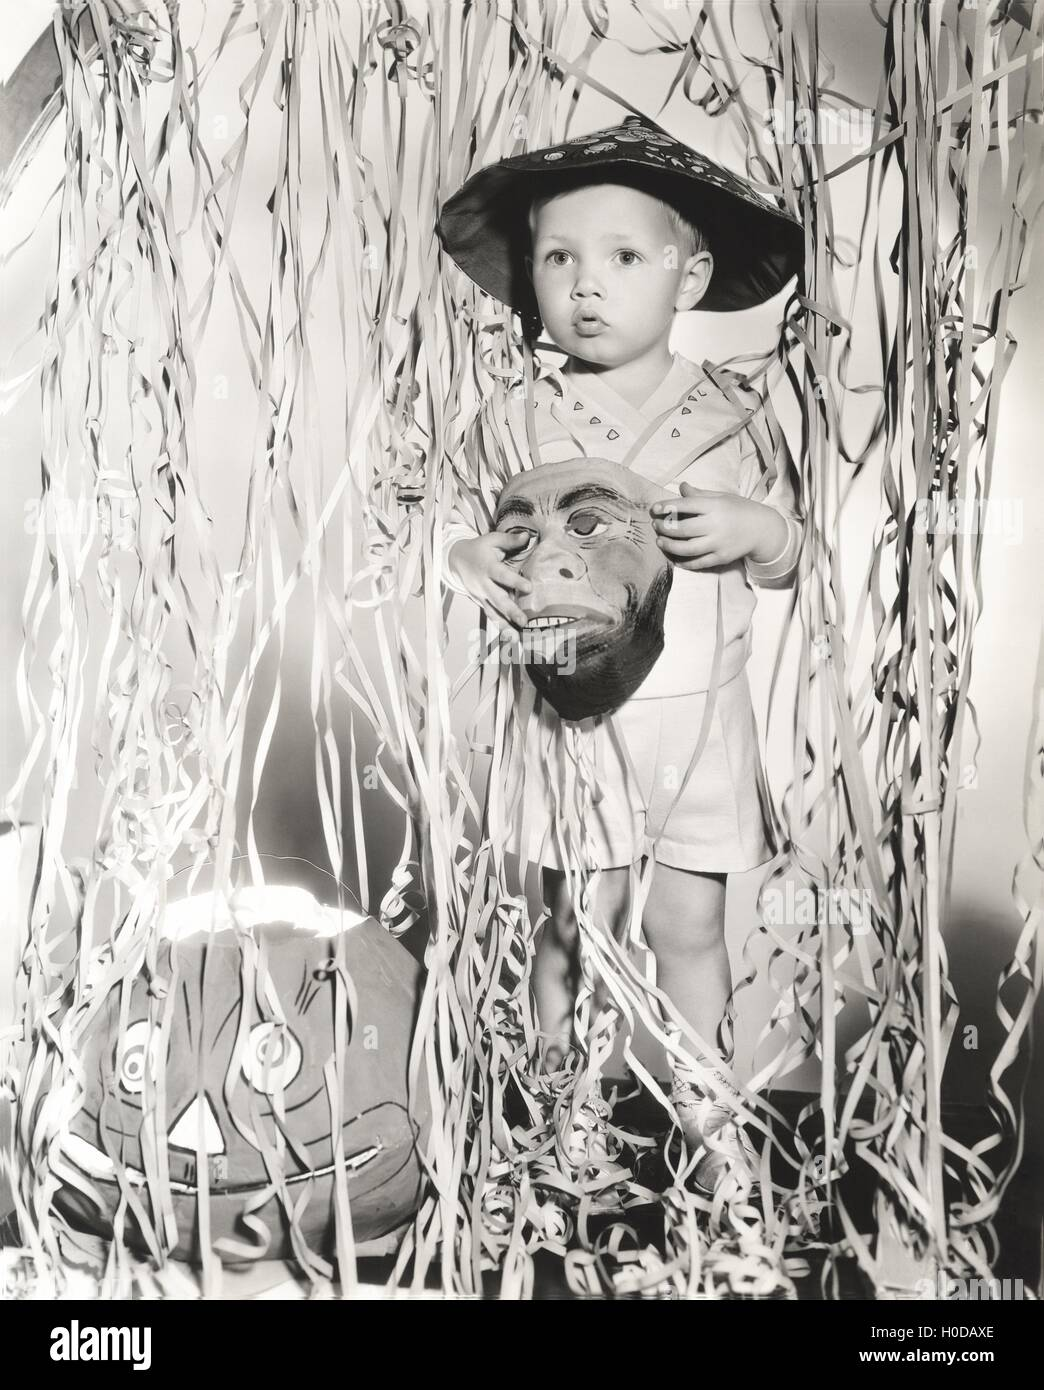 Little boy in Halloween costume holding mask standing by streamers - Stock Image